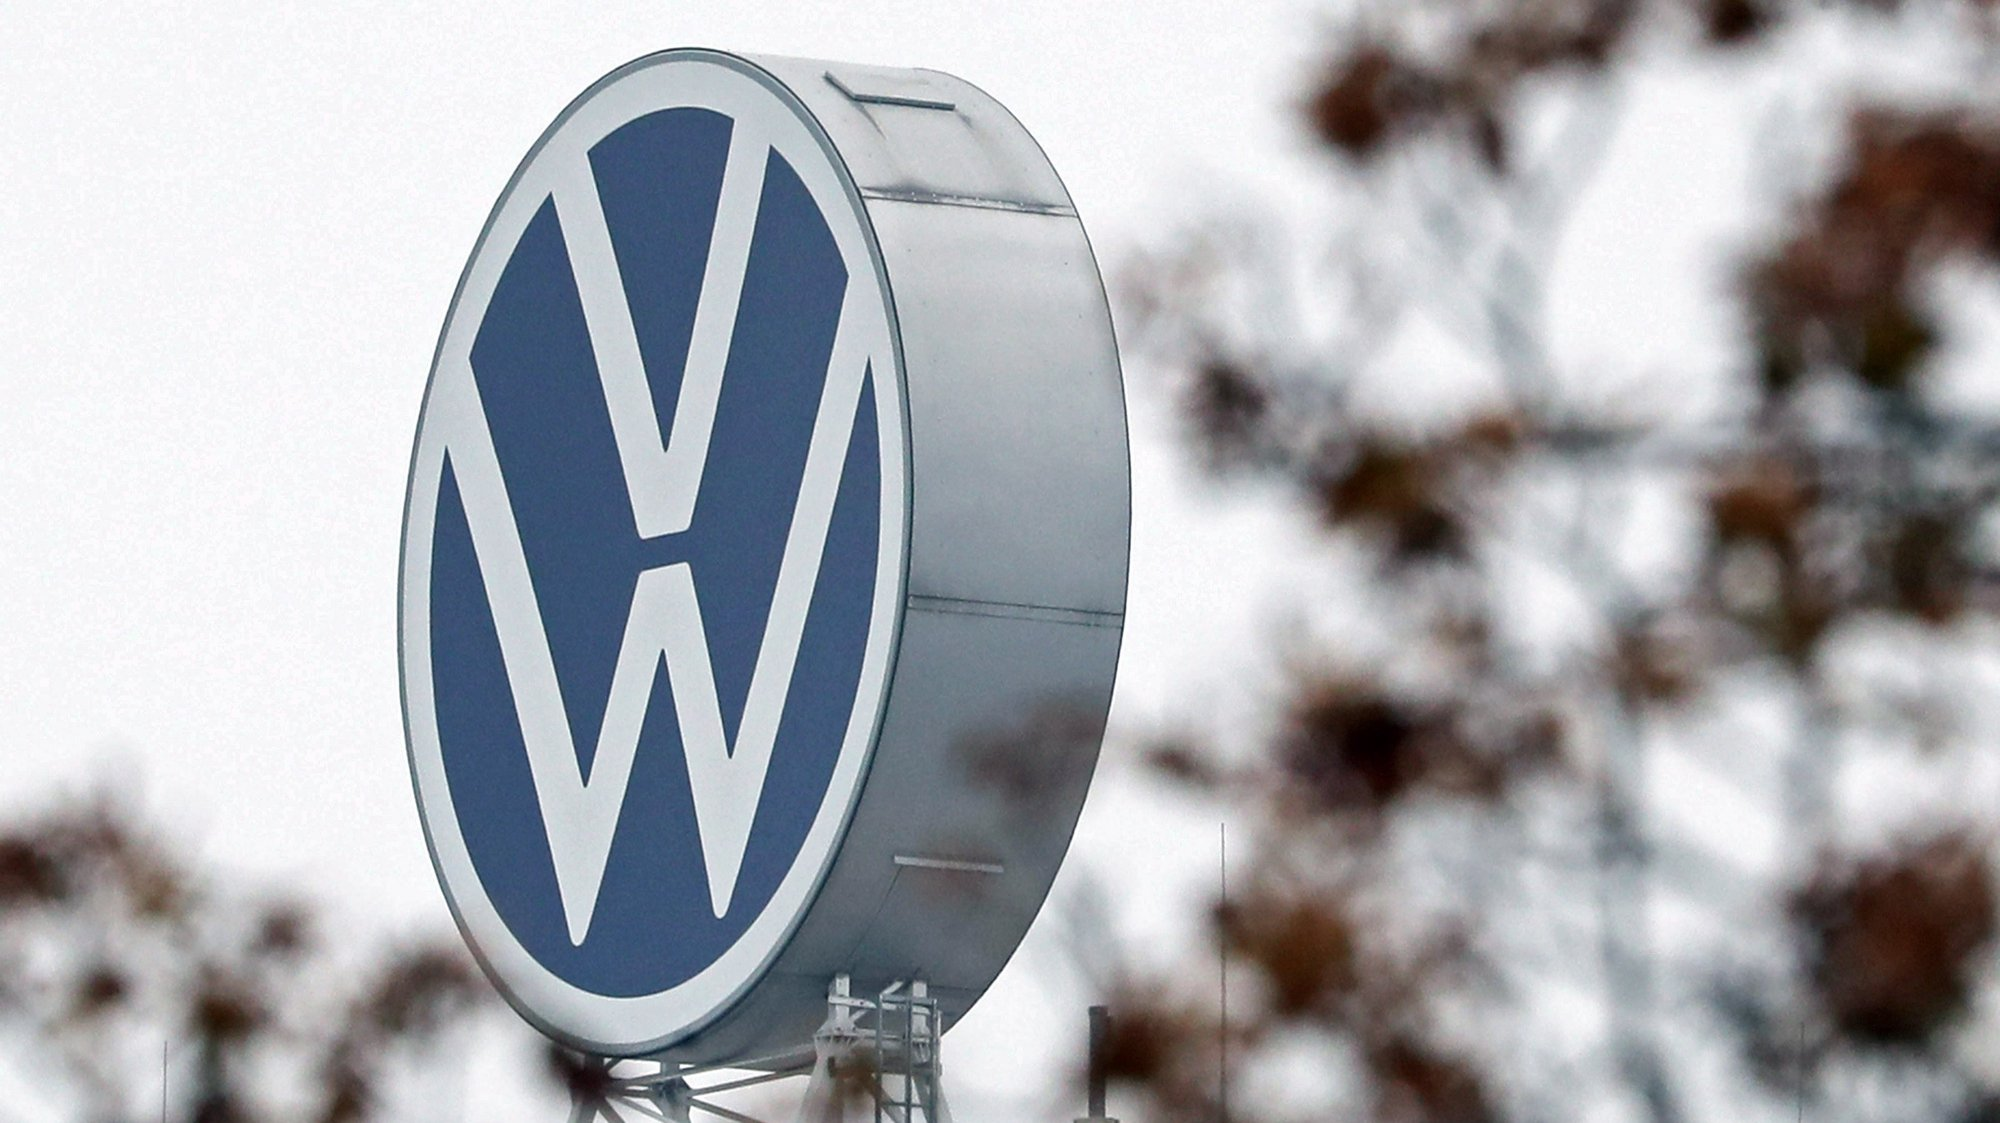 epa08782907 (FILE) - A logo of German car maker Volkswagen (VW) on top of the main administration building of the Volkswagen plant in Wolfsburg, Germany, 06 October 2019 (reissued 29 October 2020). Volkswagen Group are to publish its results for the third quarter 2020 on 29 October 2020.  EPA/FOCKE STRANGMANN *** Local Caption *** 55527628